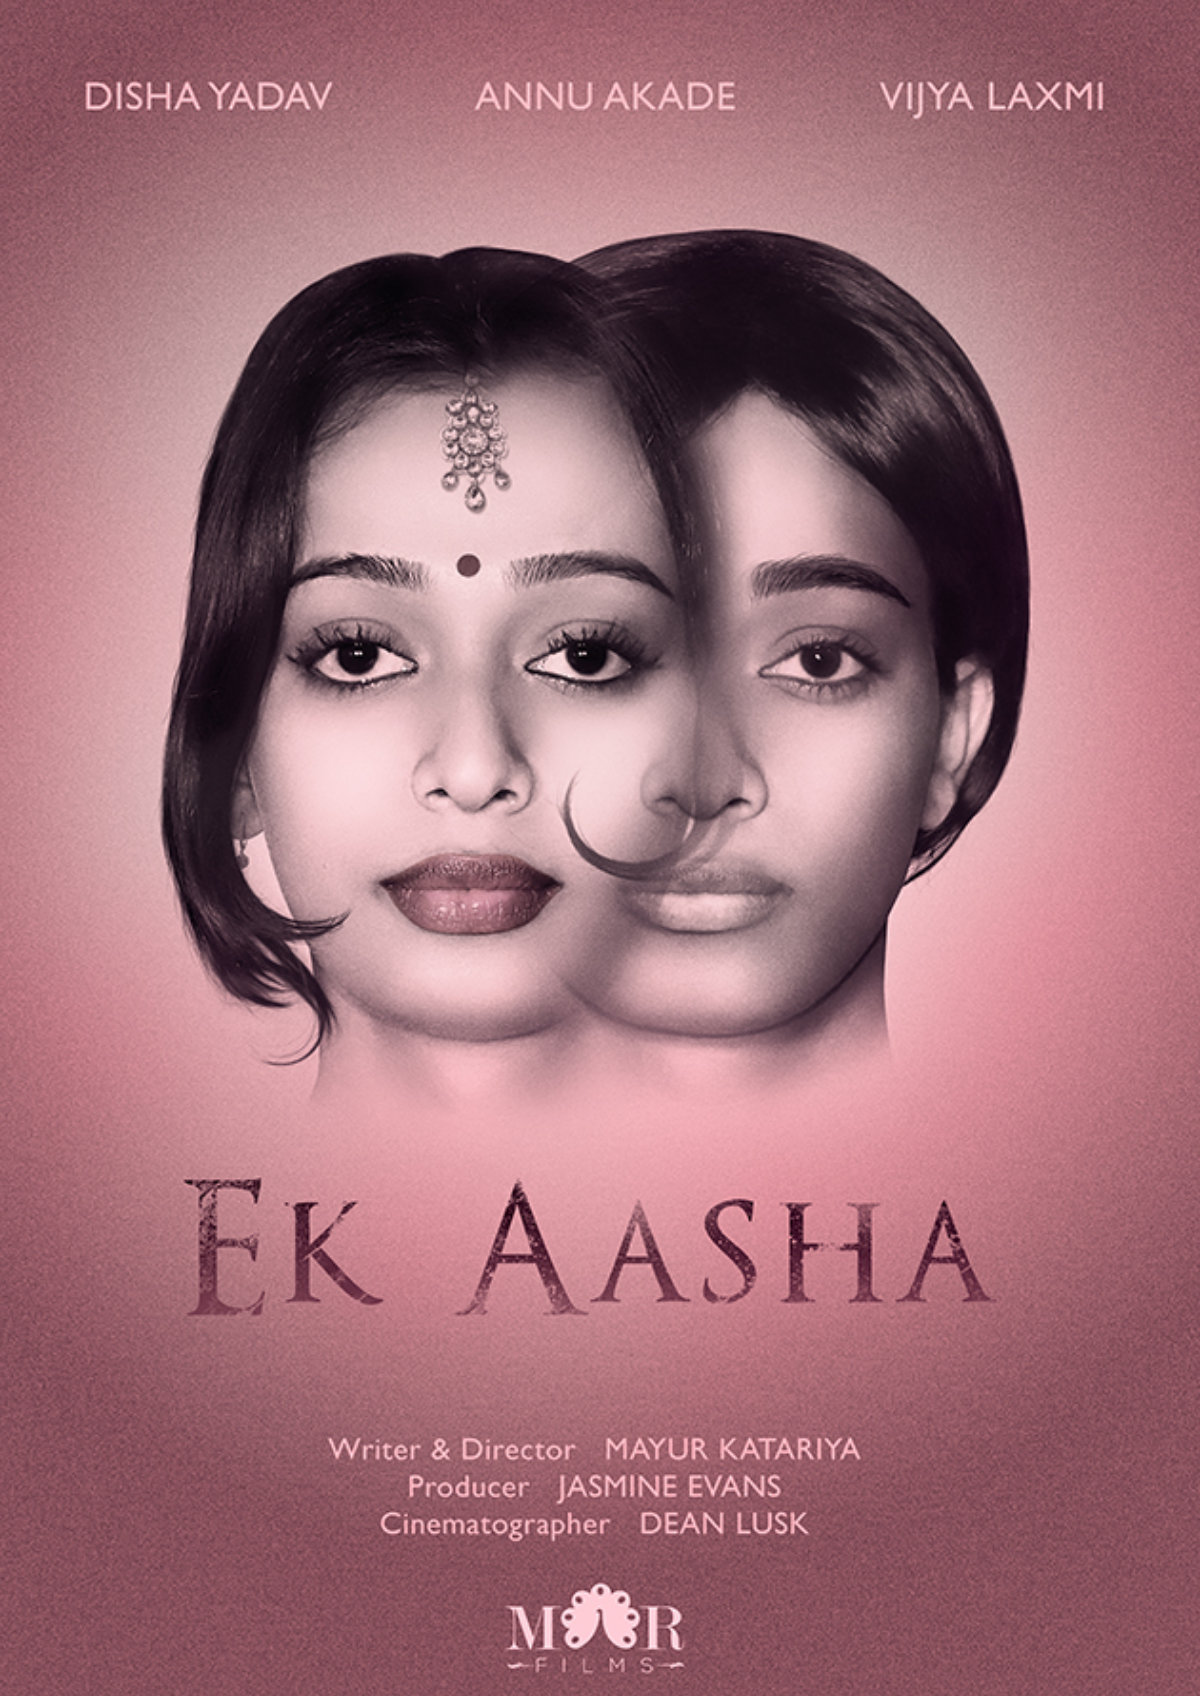 'Ek Aasha' movie poster